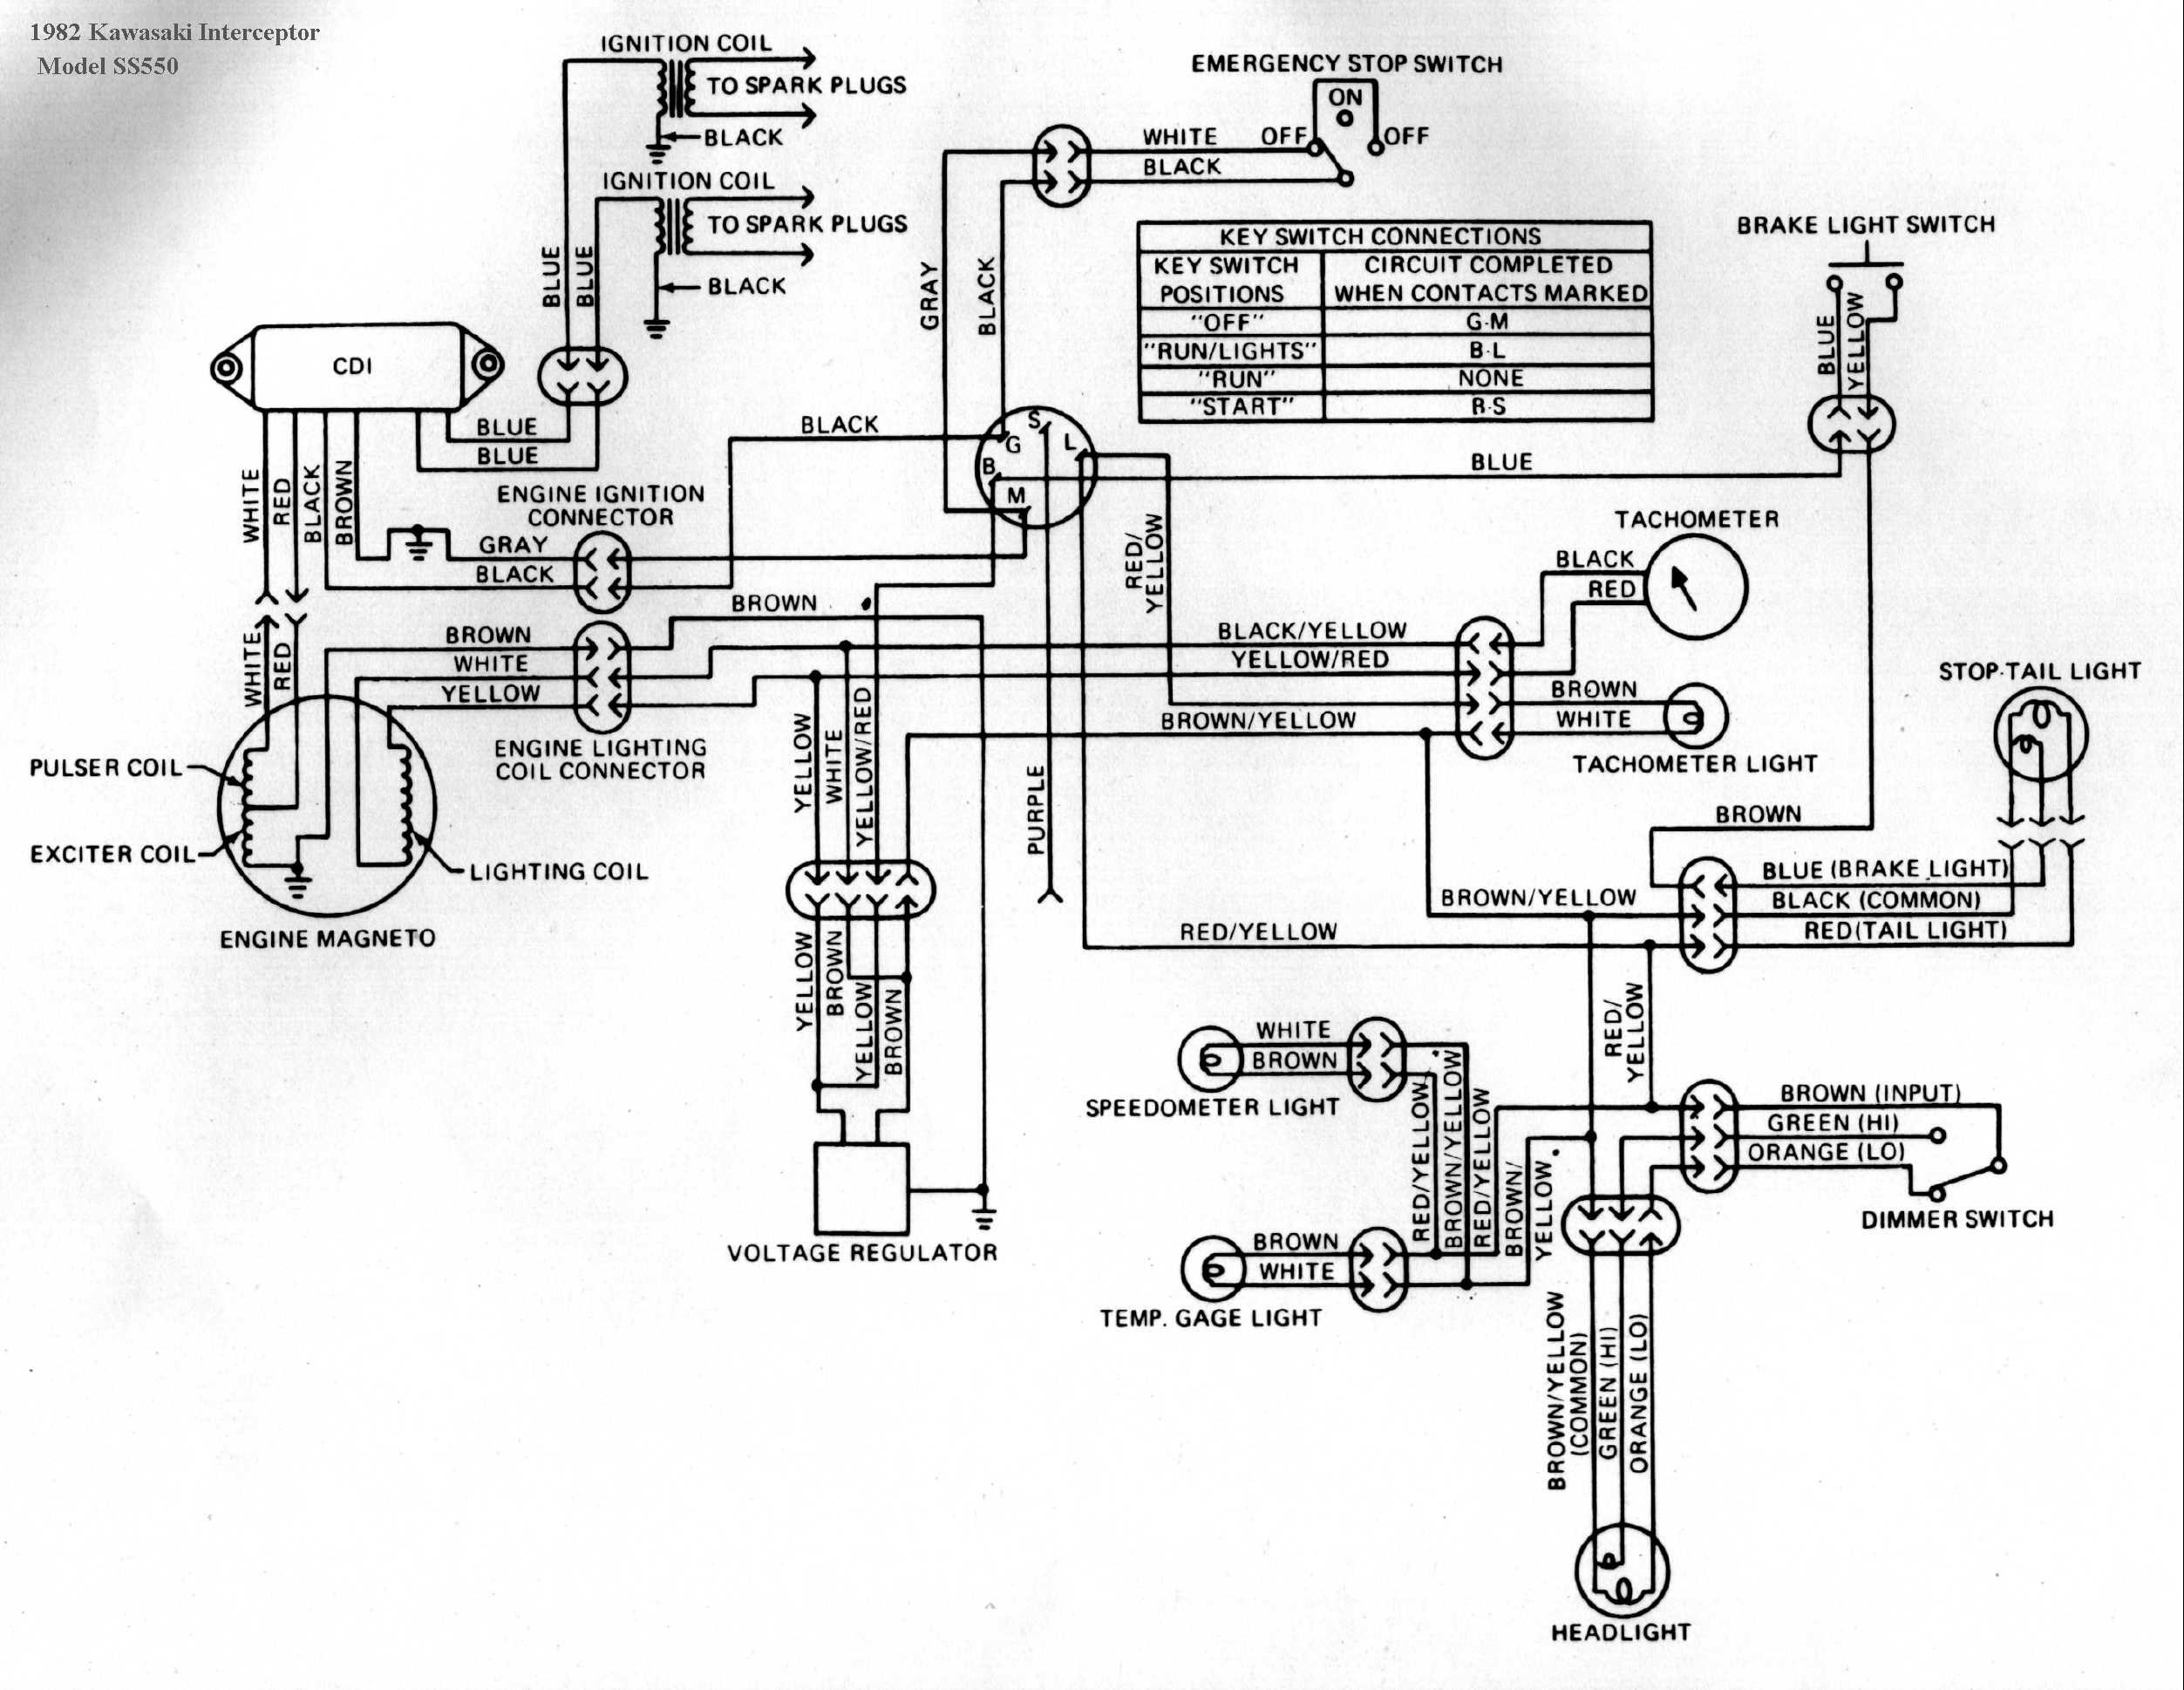 ss550 ex500 wiring diagram help ez wiring harness diagrams \u2022 free wiring 1998 kawasaki bayou 220 wiring diagram at bayanpartner.co